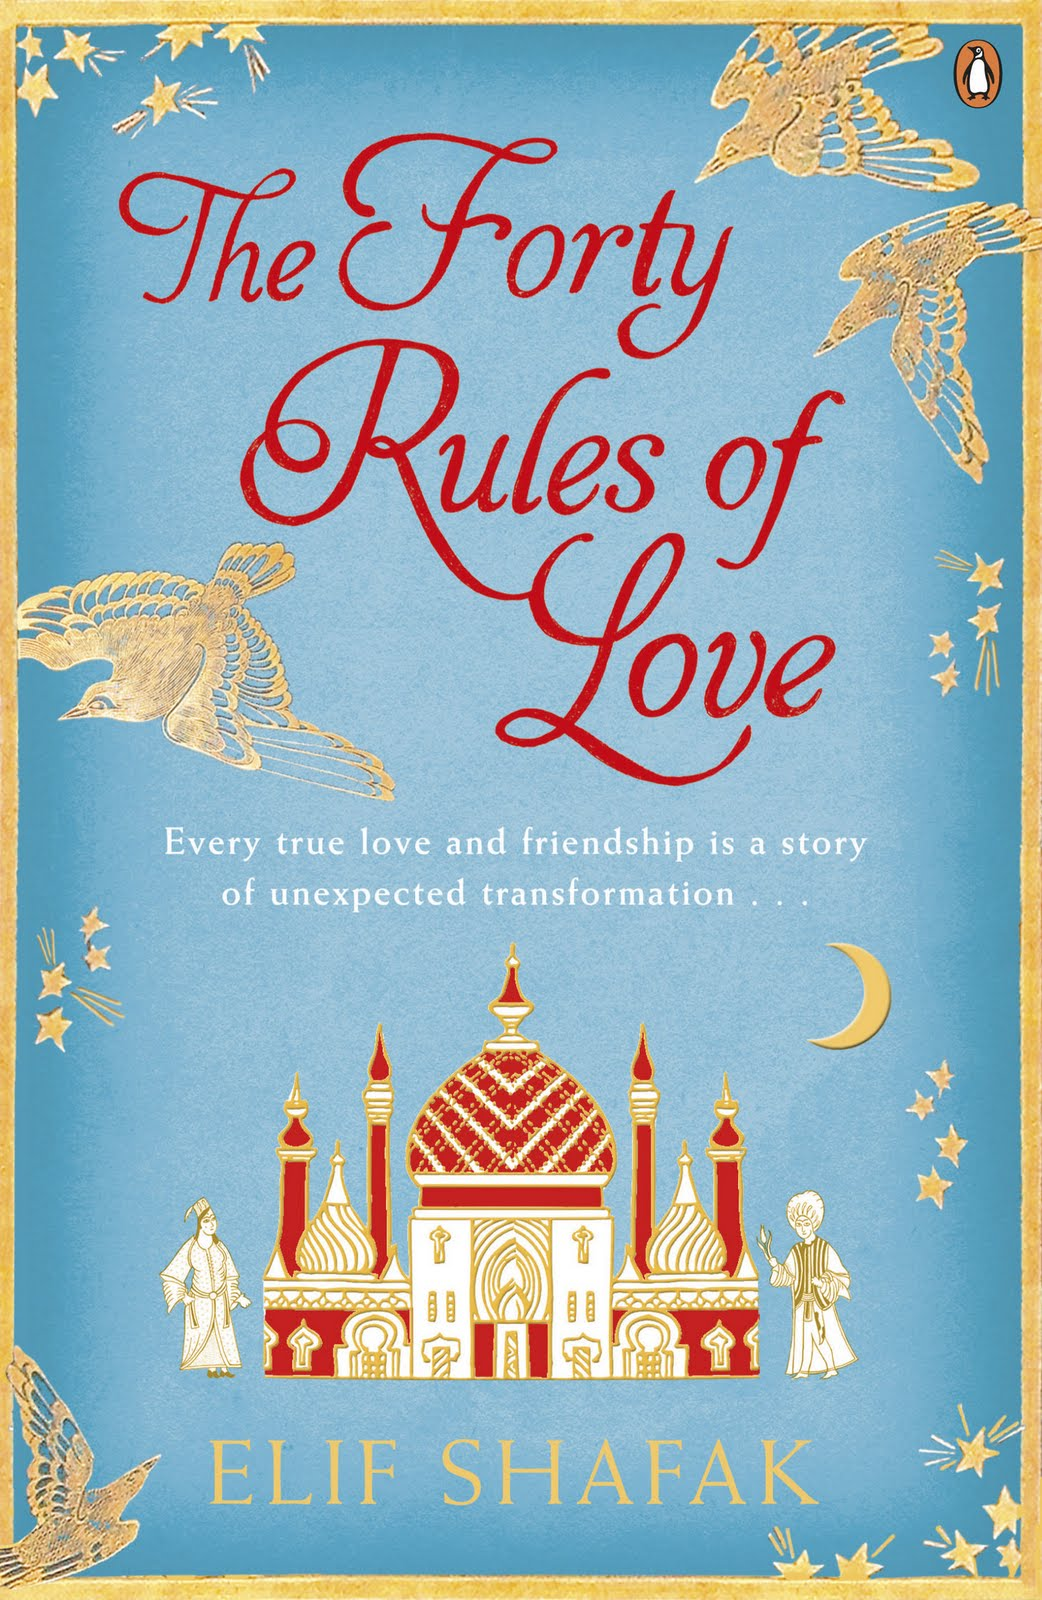 elif shafak the forty rules of love pdf